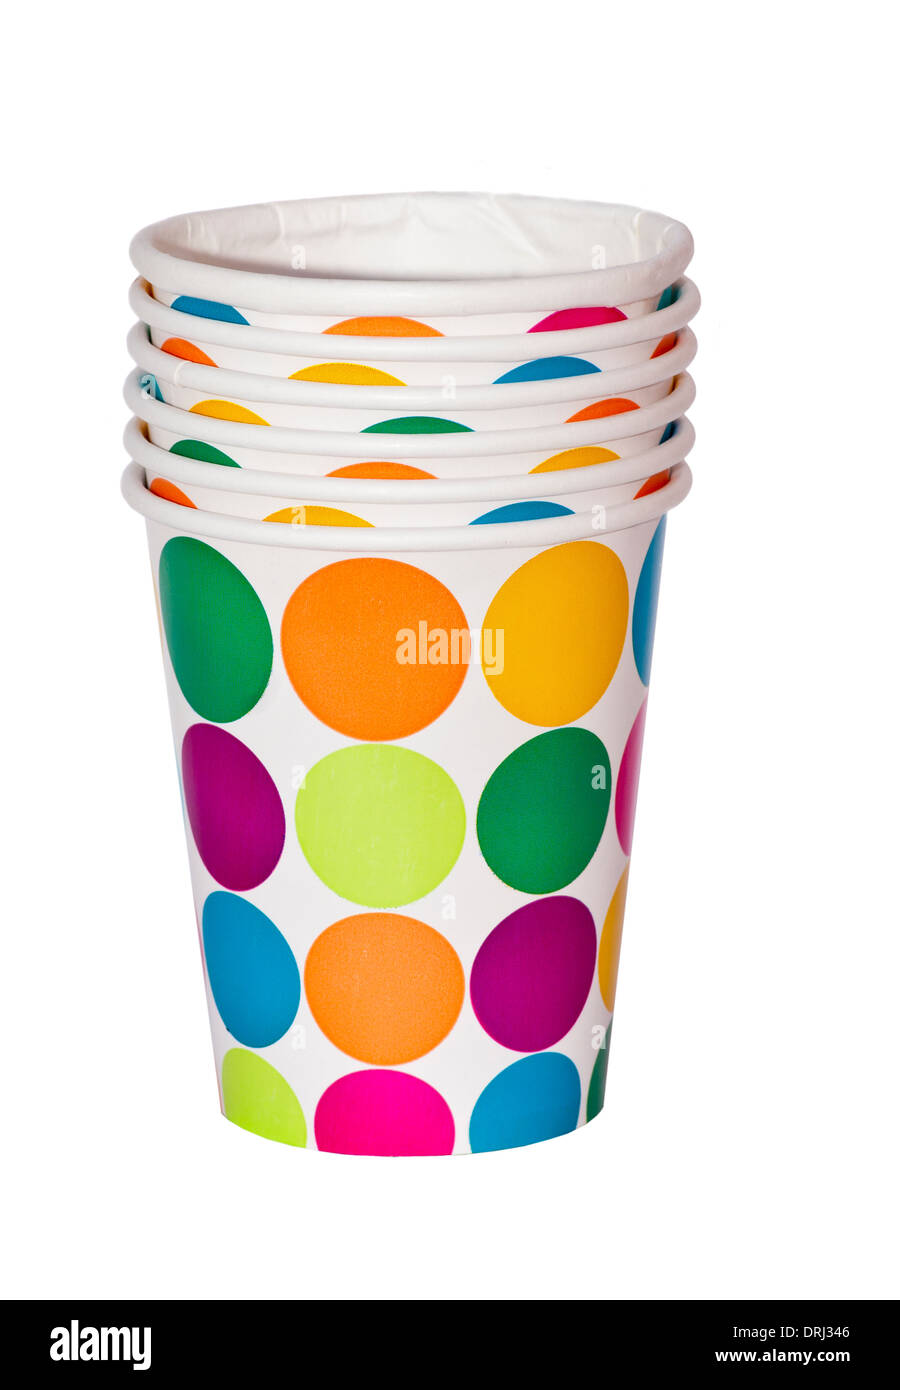 Party paper Cups Beakers - Stock Image